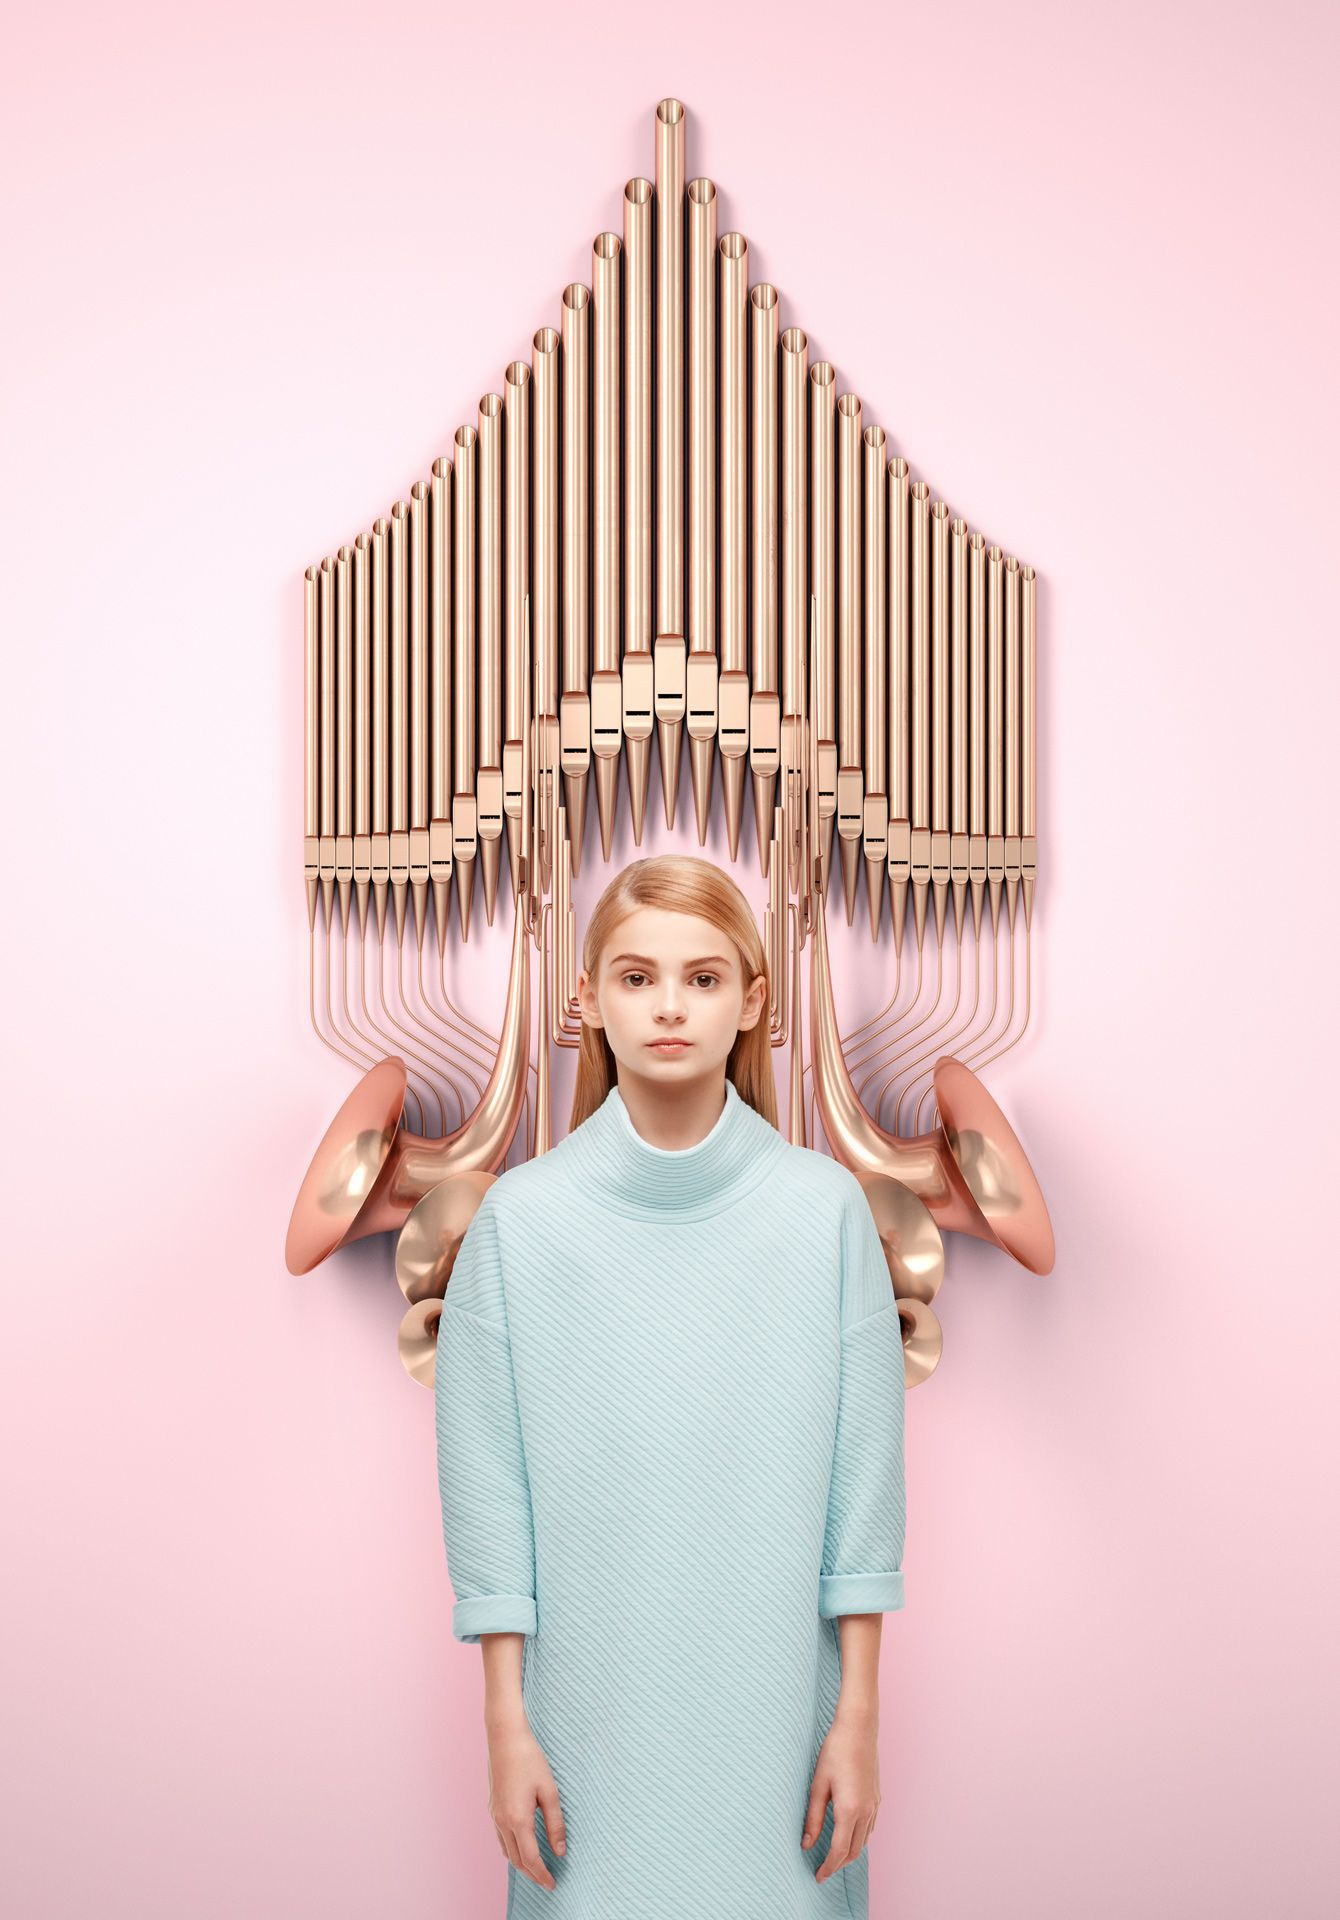 young blonde girl wearing light blue dress standing in front of futuristic copper pipes and horns by Simon Duhamel for creative project Bloom Maestro